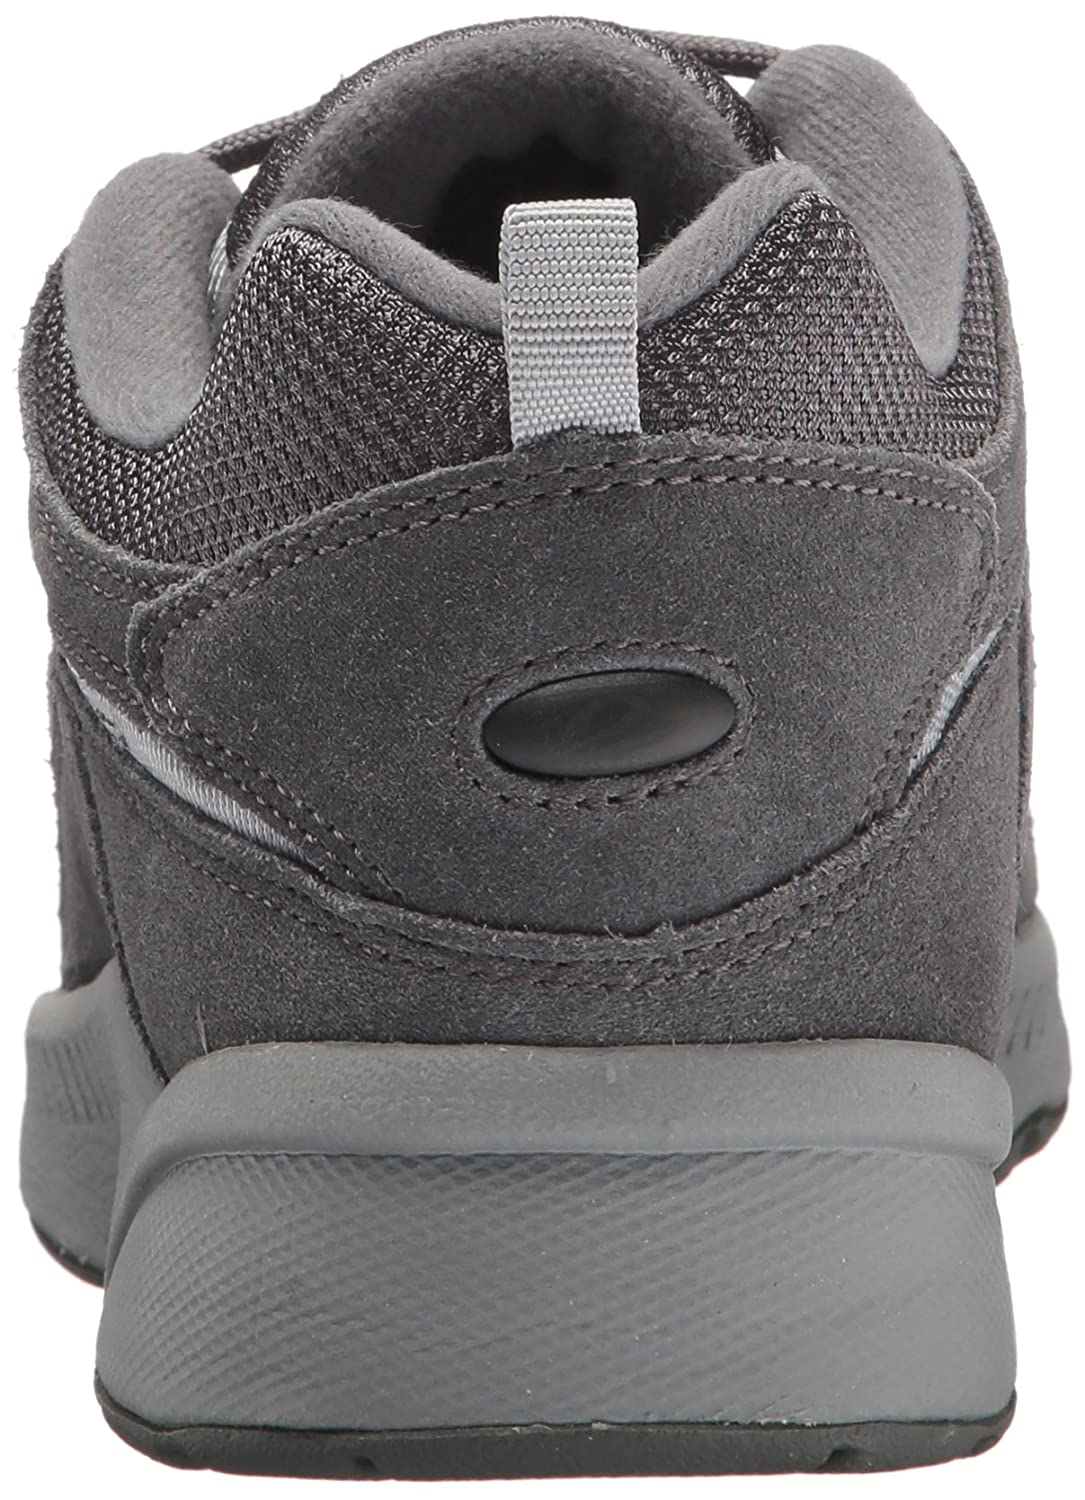 Easy Spirit Women's Romy US|Grey Sneaker B07577TK83 8 E US|Grey Romy 32e1ac